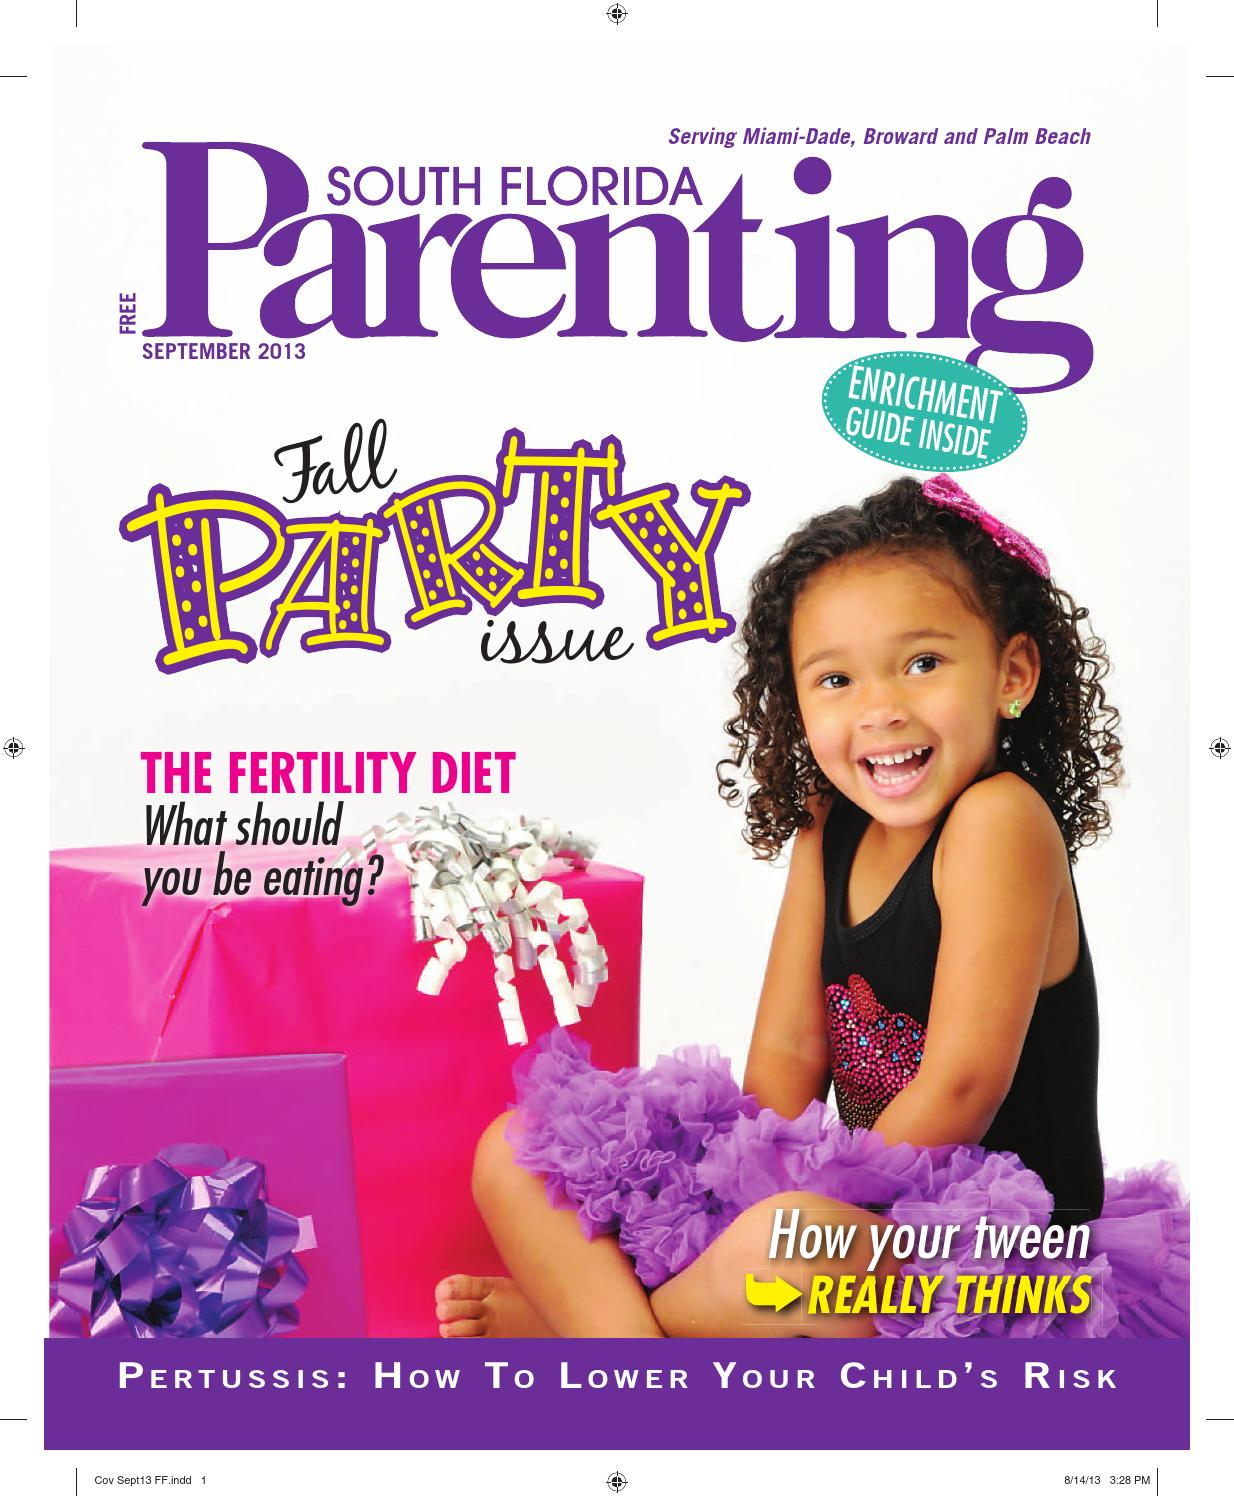 7785d782de South Florida Parenting September 2013 by Forum Publishing Group - issuu